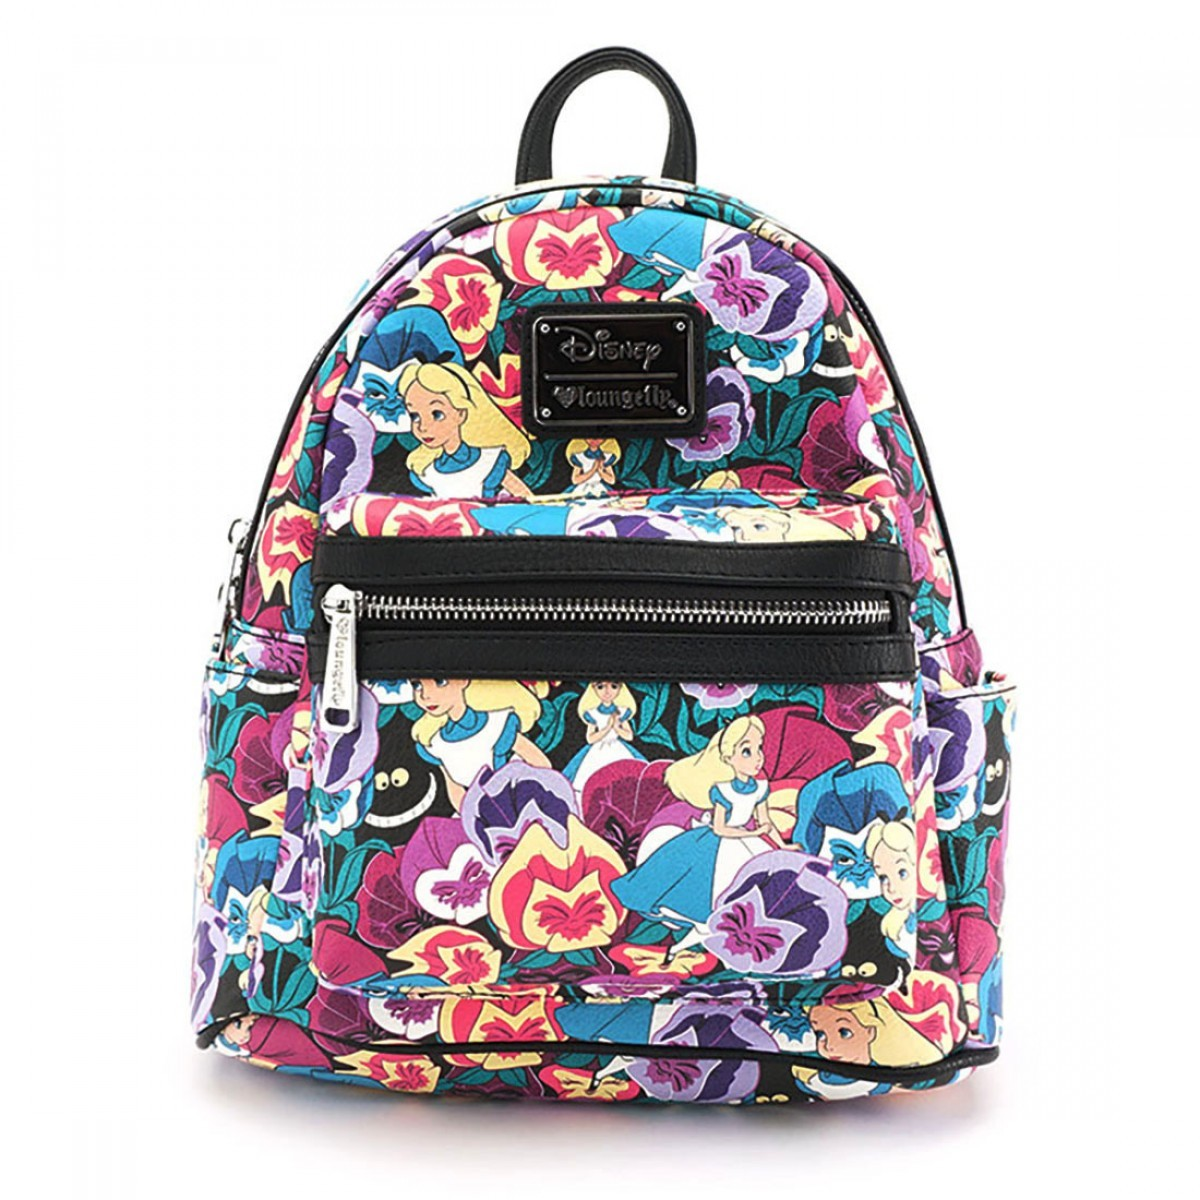 Loungefly Disney Alice In Wonderland Floral Print Mini Backpack image